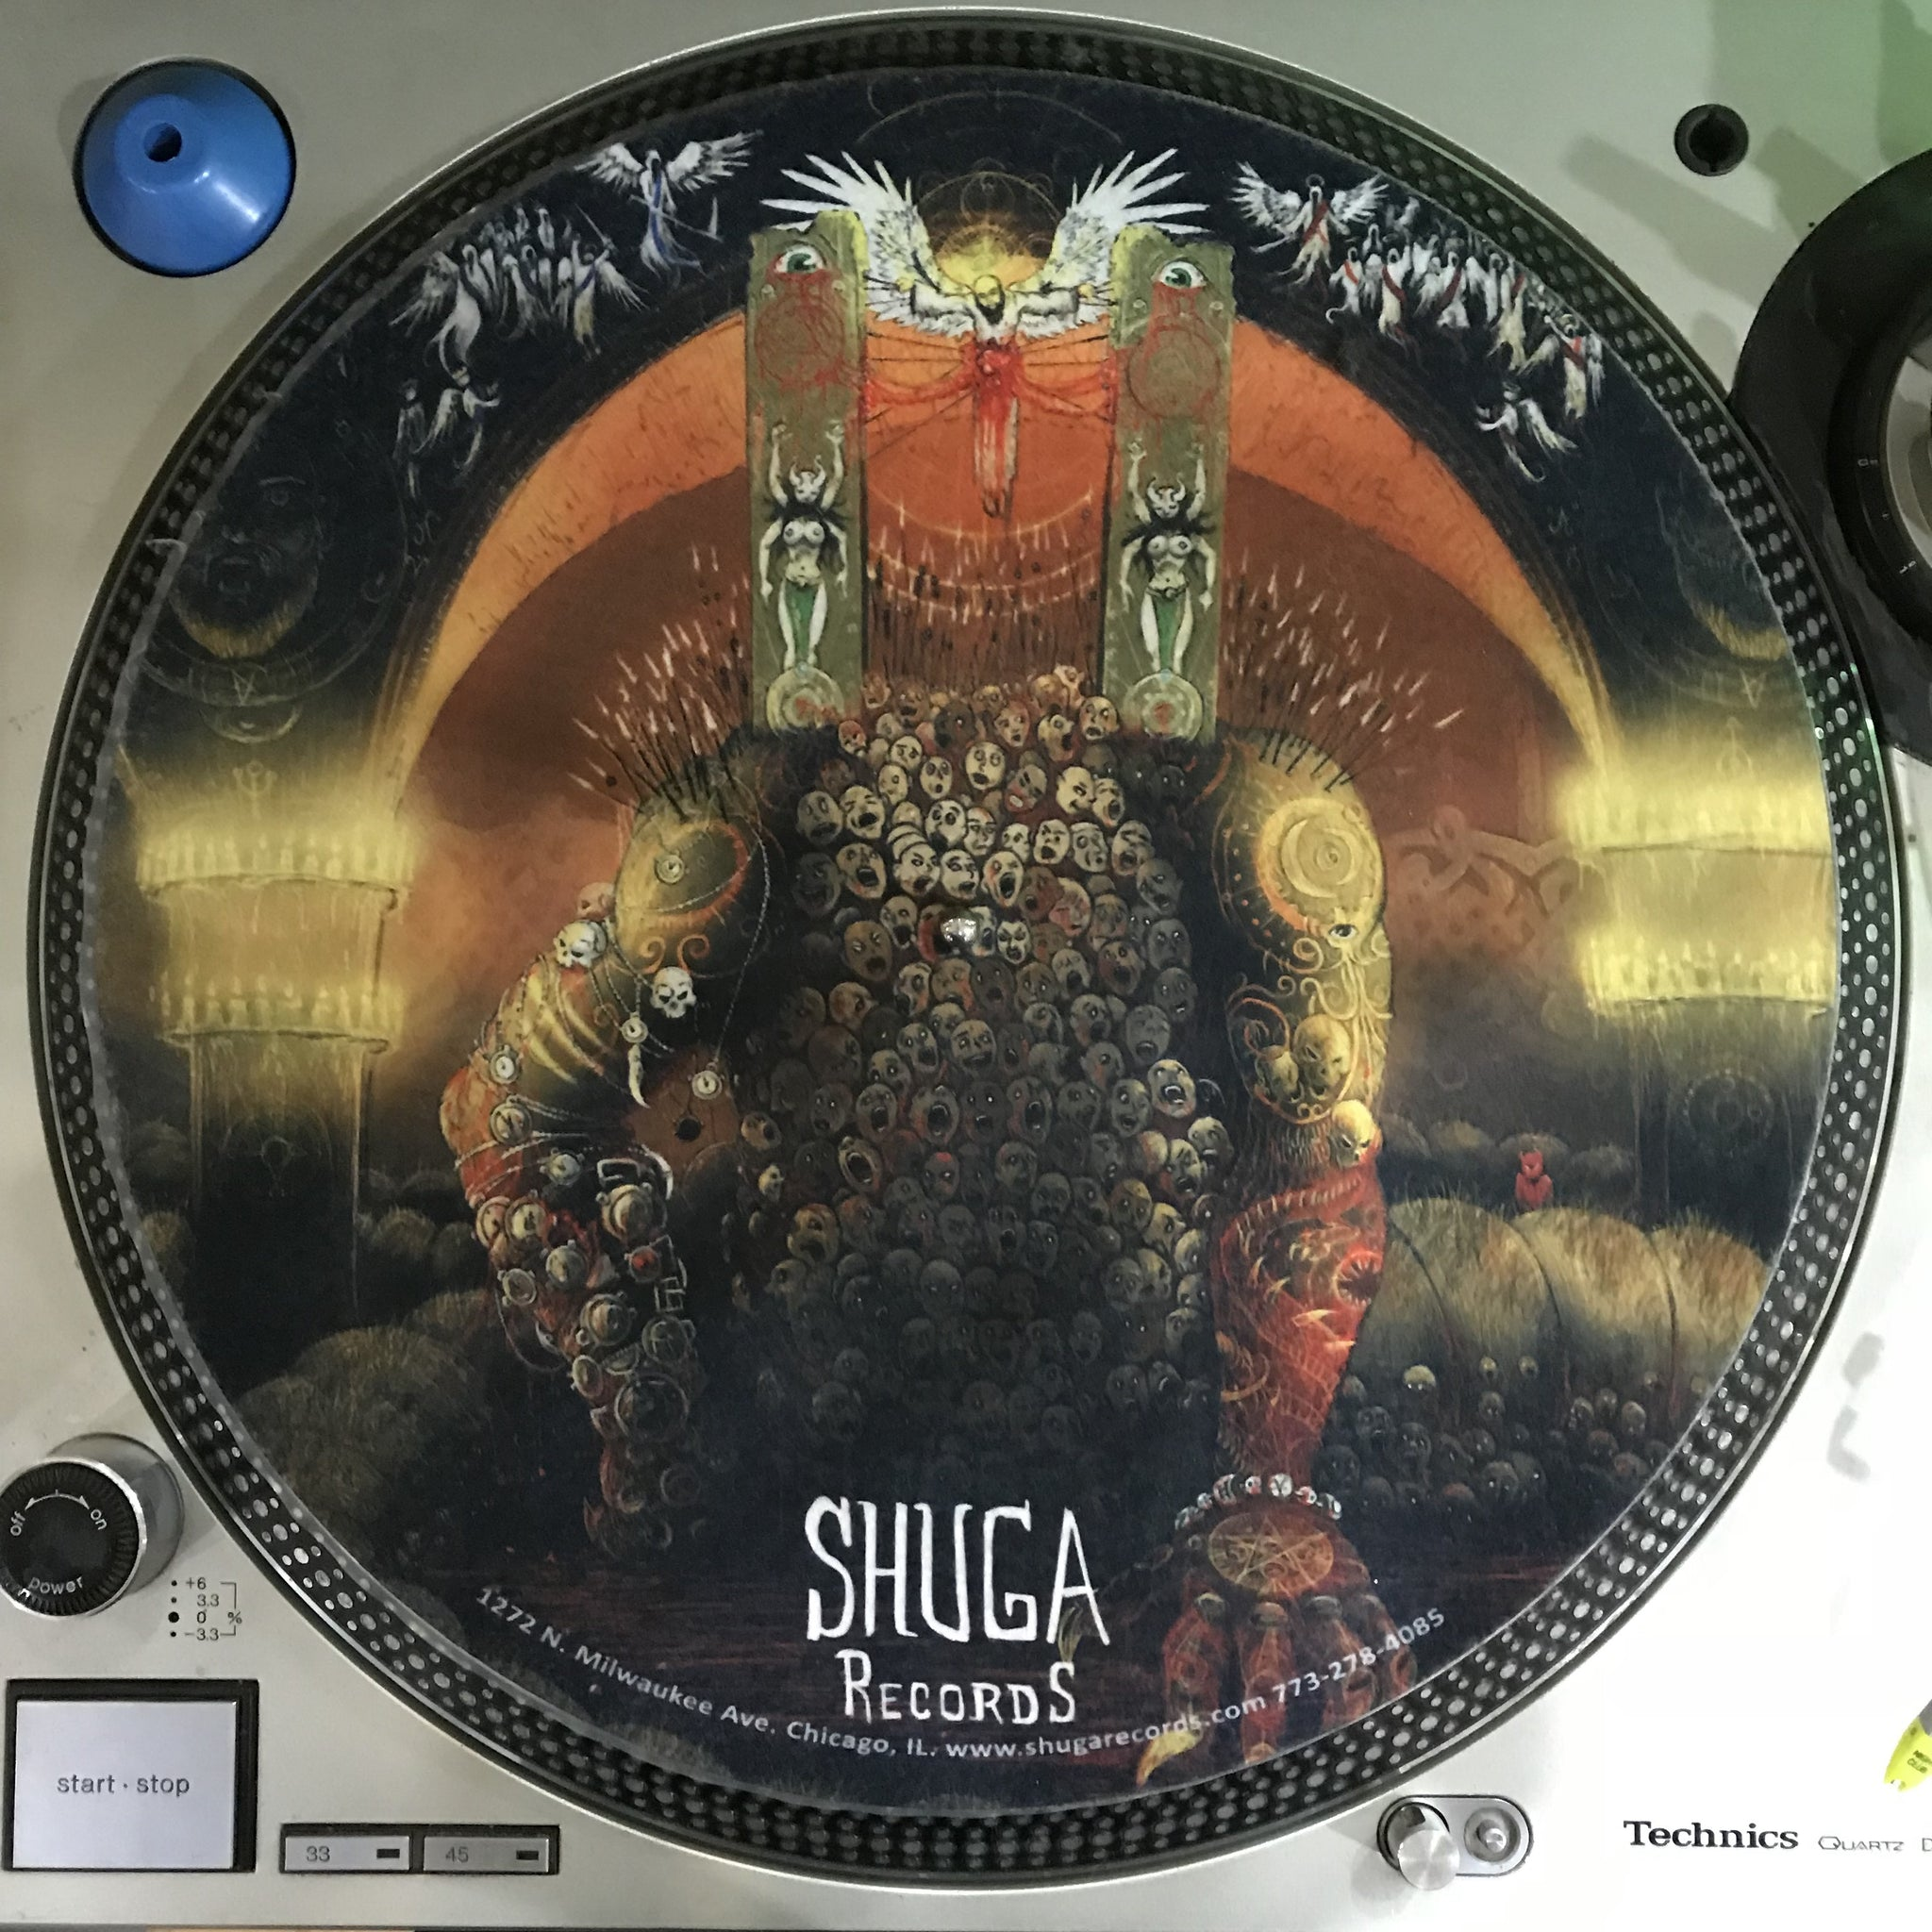 Shuga Records 2018 Limited Edition Vinyl Record Slipmat Master Of Puppets